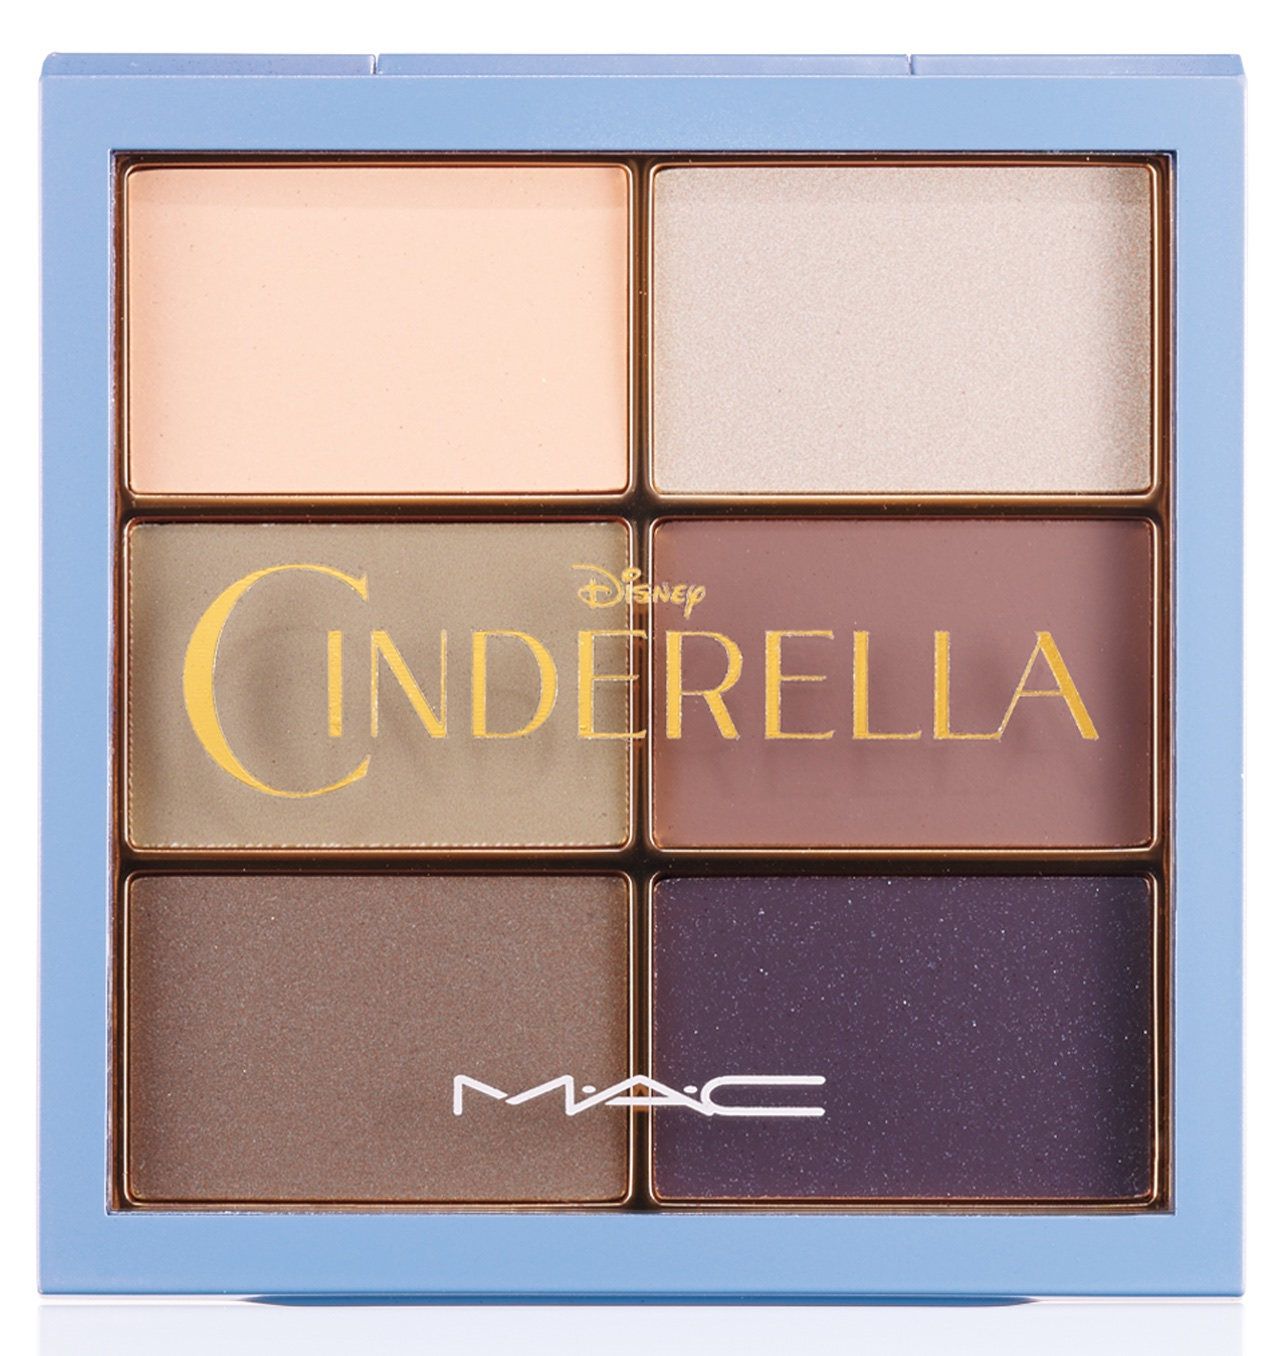 mac cinderella collection 2015 cosmetics